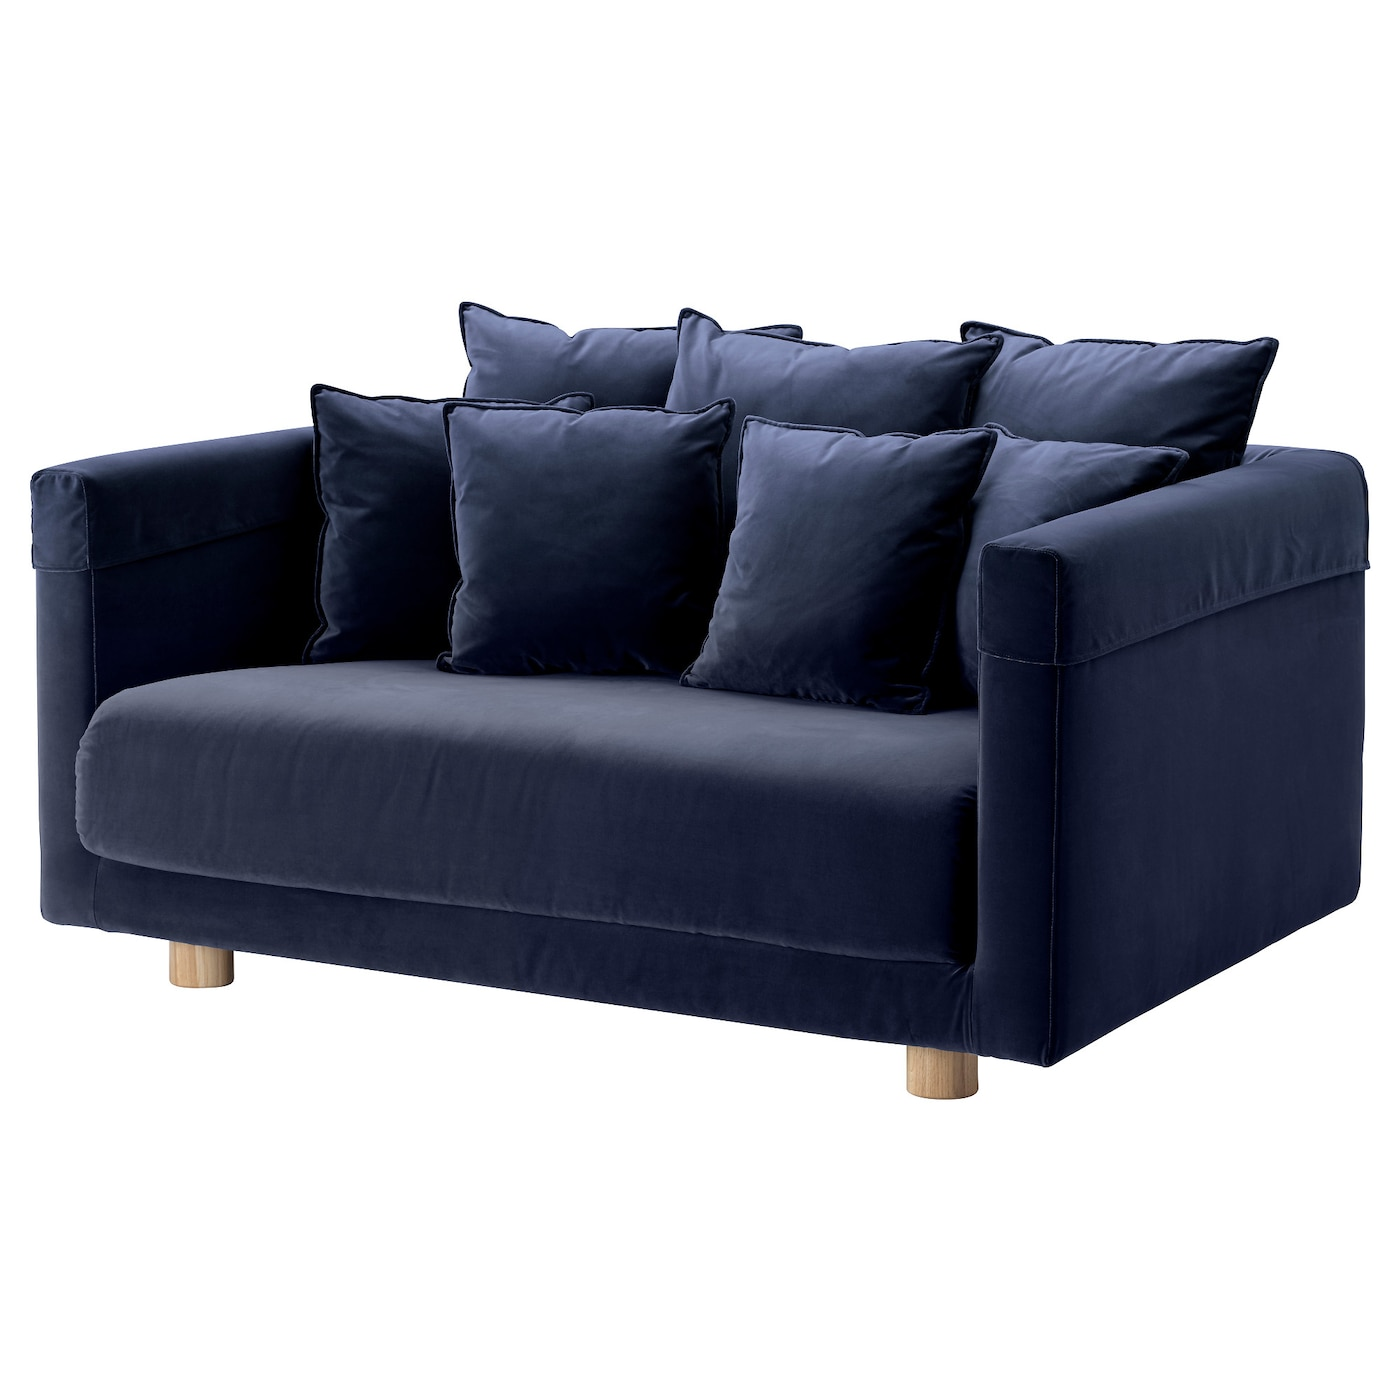 blue sofas ikea vimle 2 seat sofa gr sbo black blue ikea. Black Bedroom Furniture Sets. Home Design Ideas